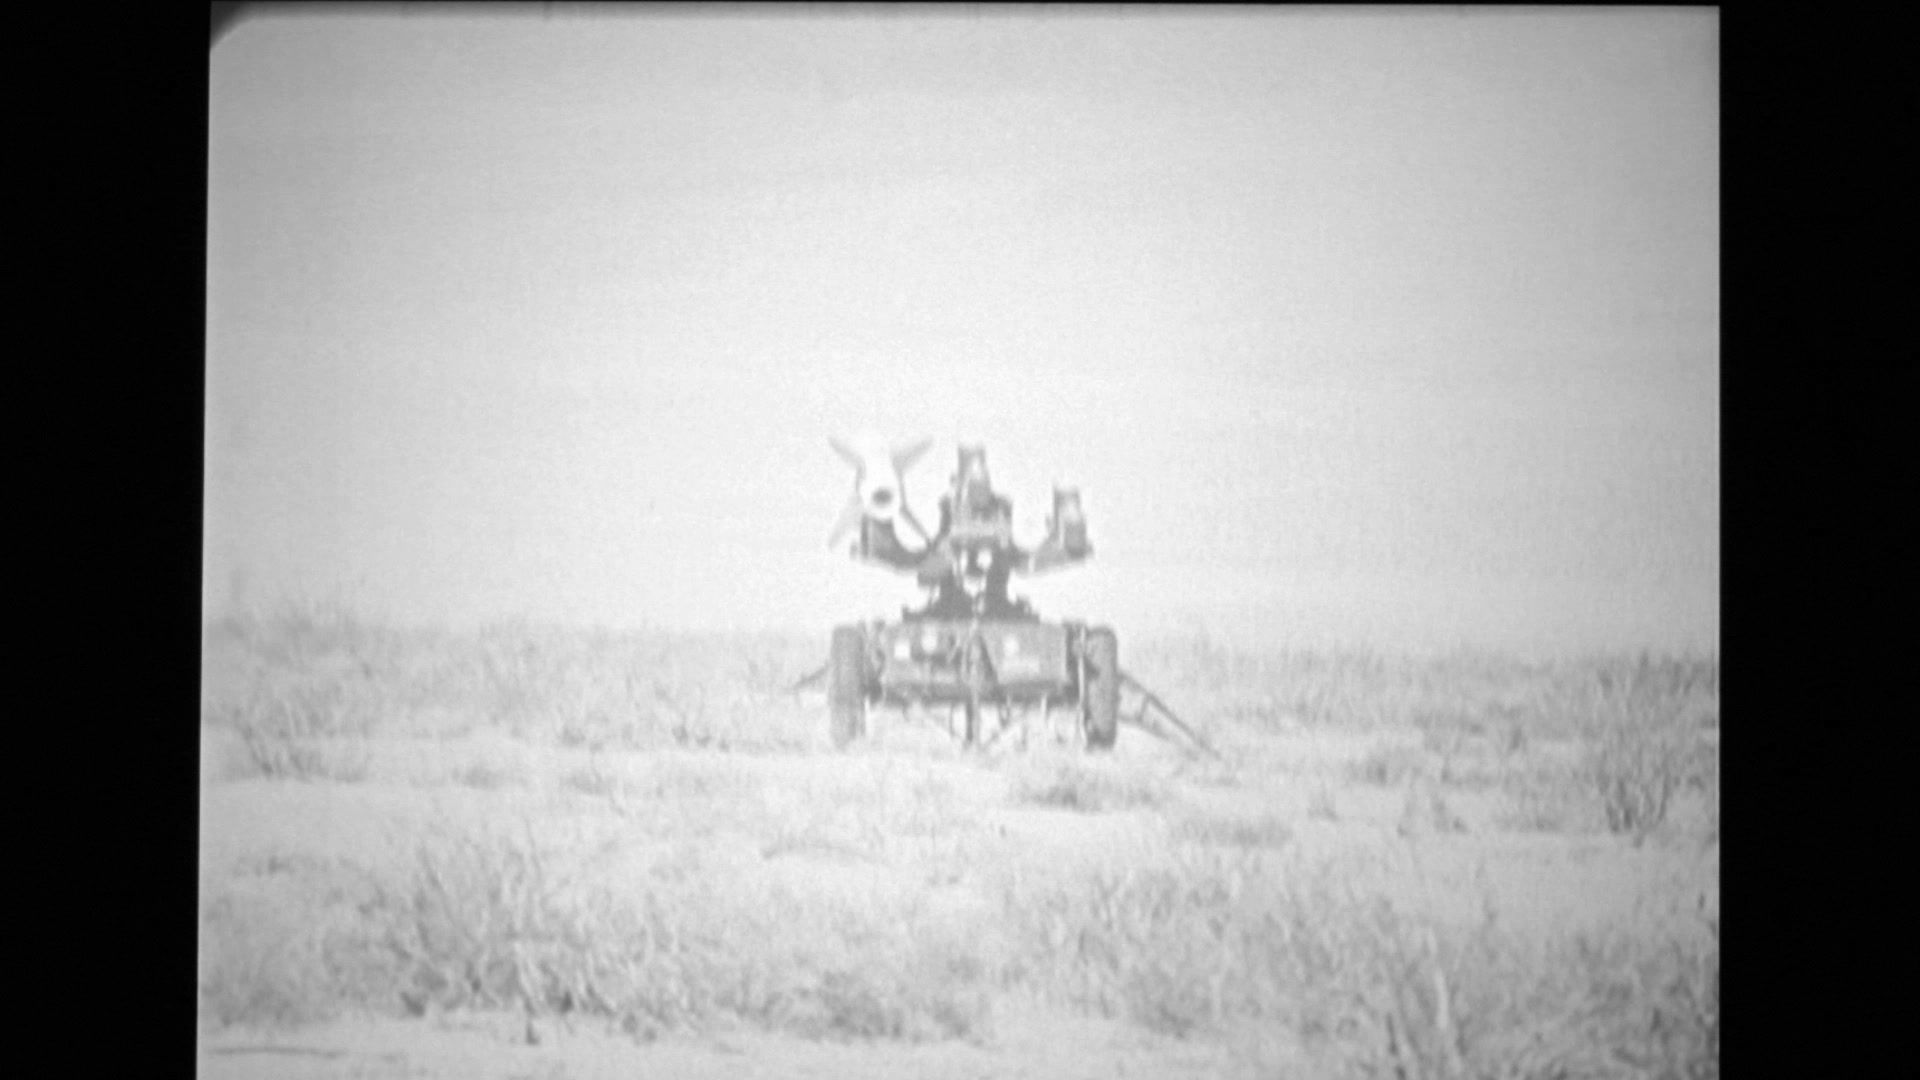 Military Hawk missile firing in the air Stock Footage AD